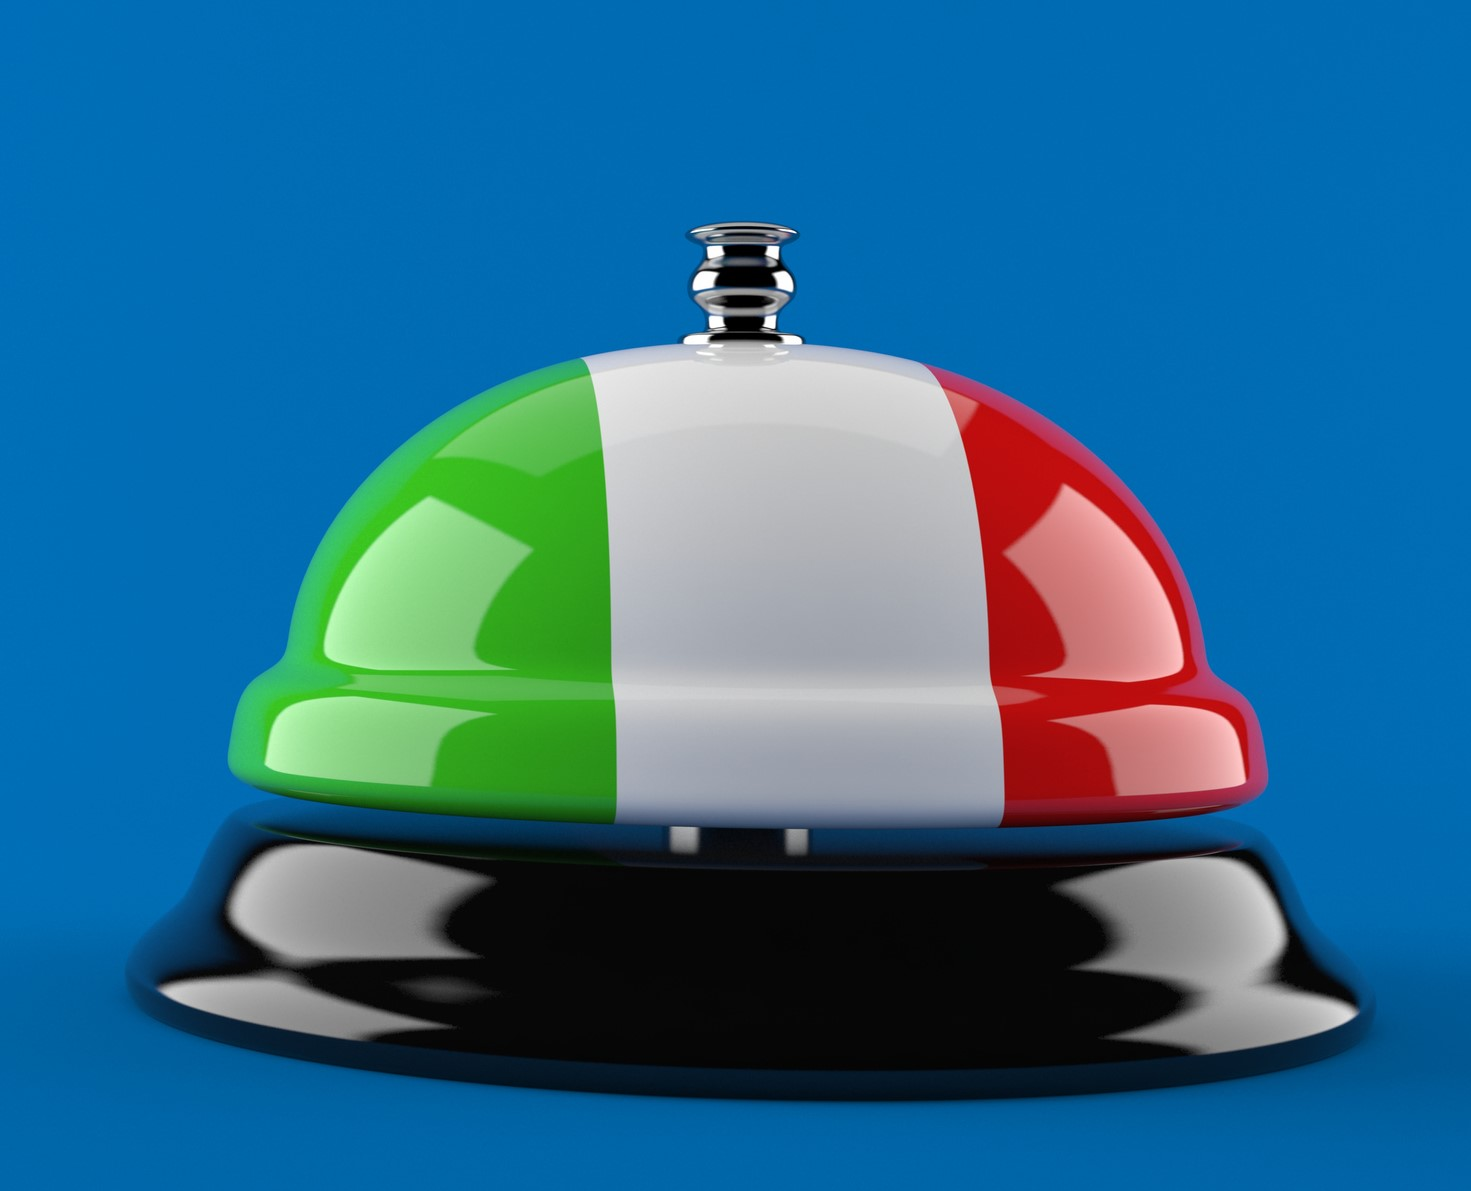 Hotel bell with italian flag isolated on blue background. 3d illustration